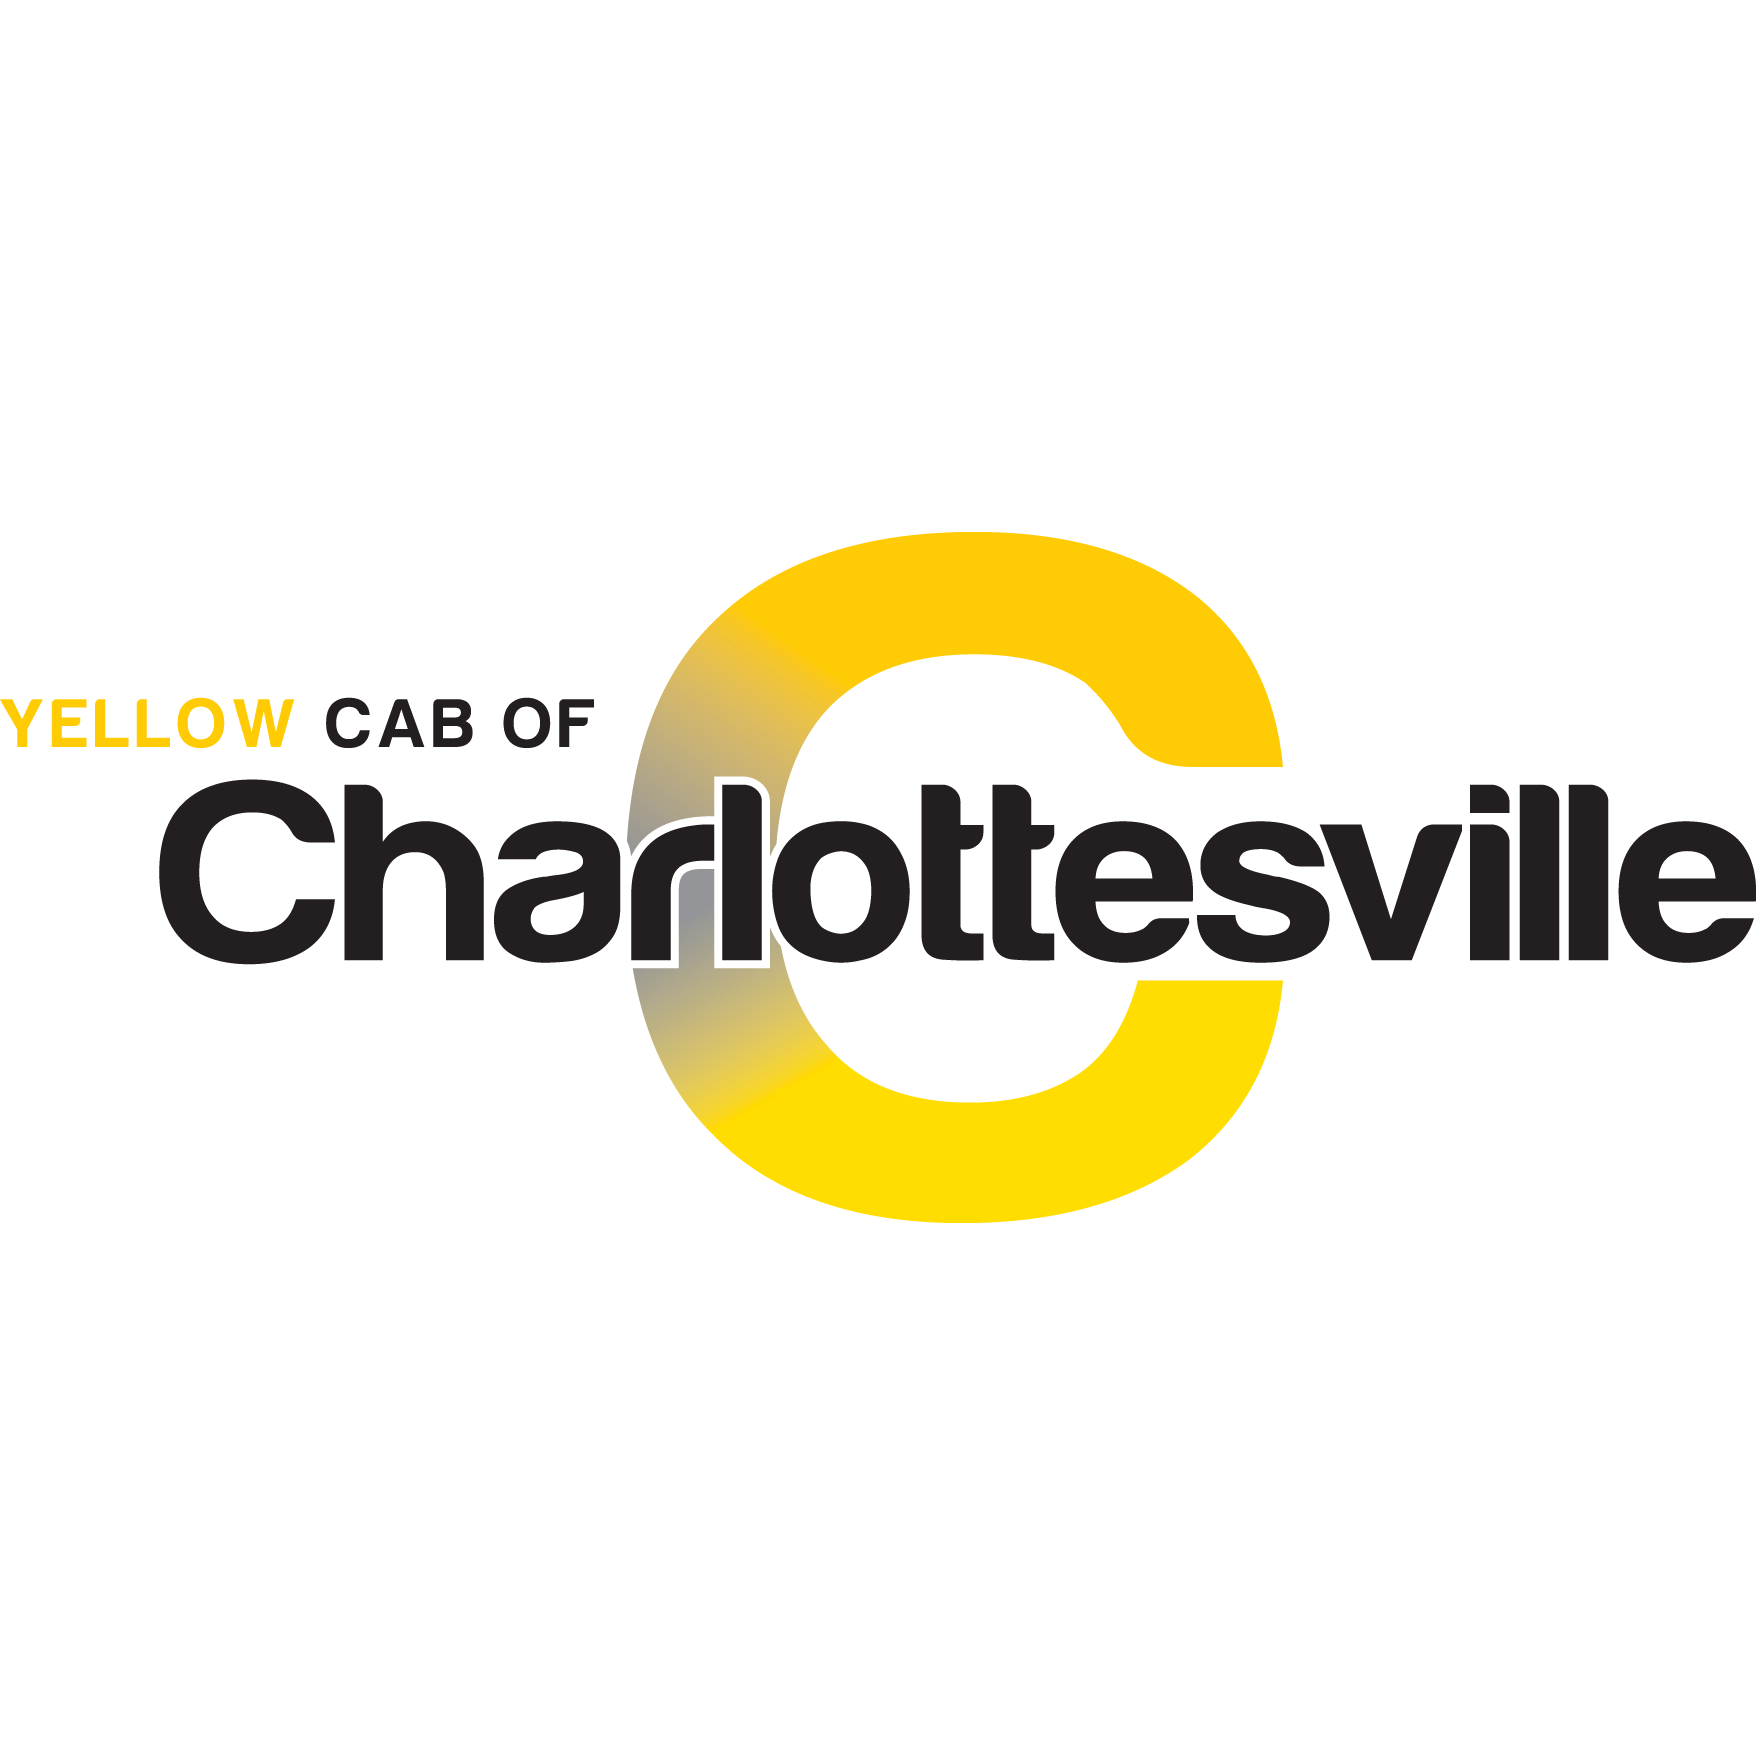 Yellow Cab Of Charlottesville - Charlottesville, VA - Taxi Cabs & Limo Rental